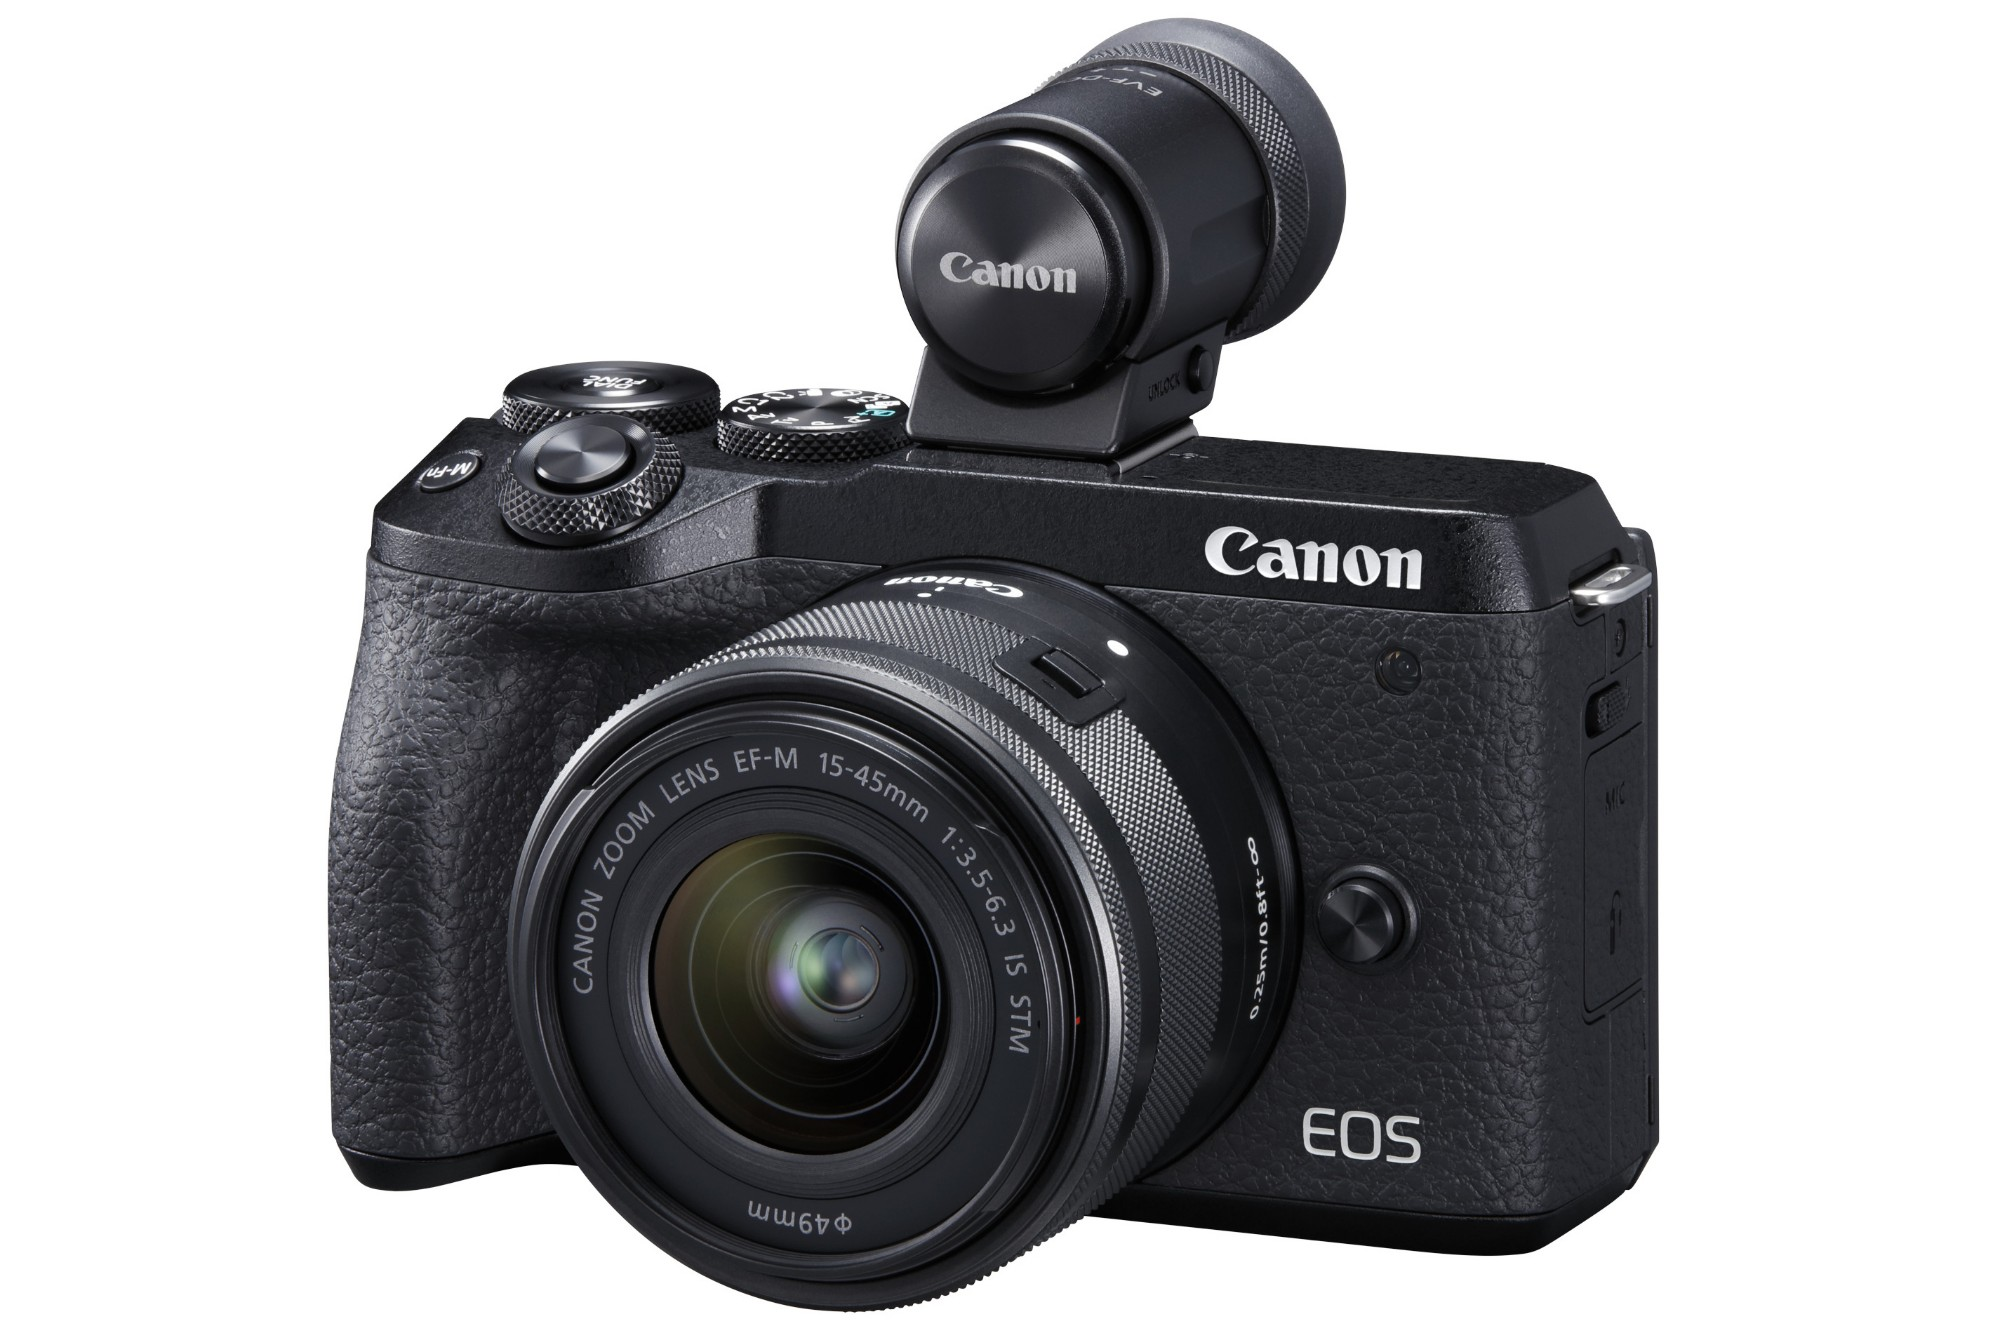 Canon EOS M6 MK II Mirrorless Camera with EF-M 15-45mm IS STM Lens & EVF-DC2 Viewfinder - Black